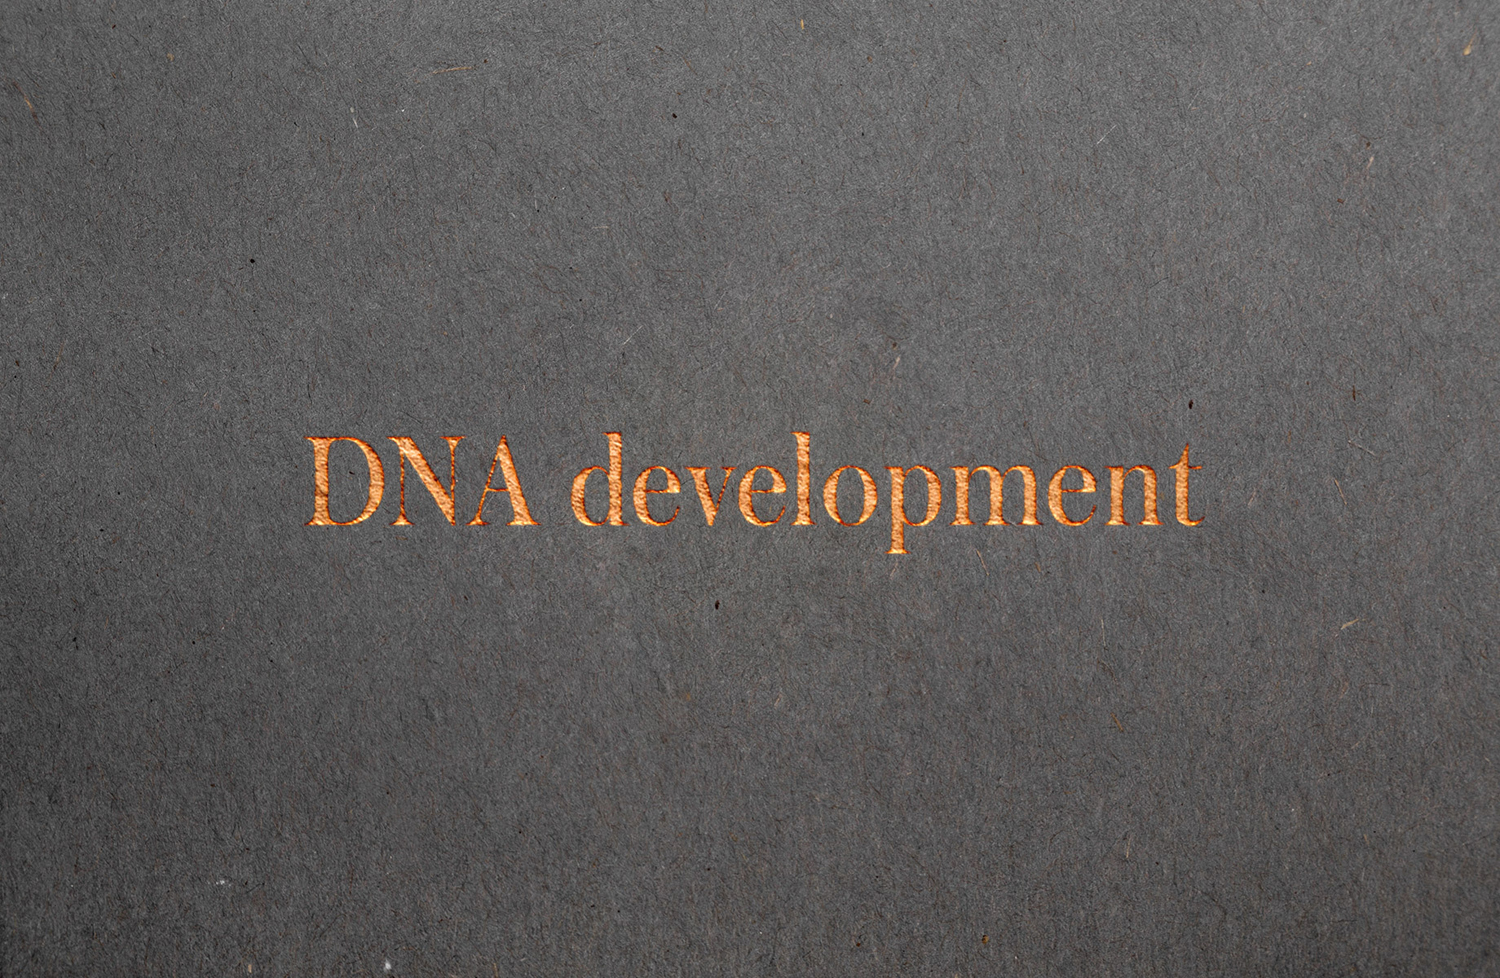 Brand identity and copper block foiled logotype for real estate investment and development business DNA development by Face